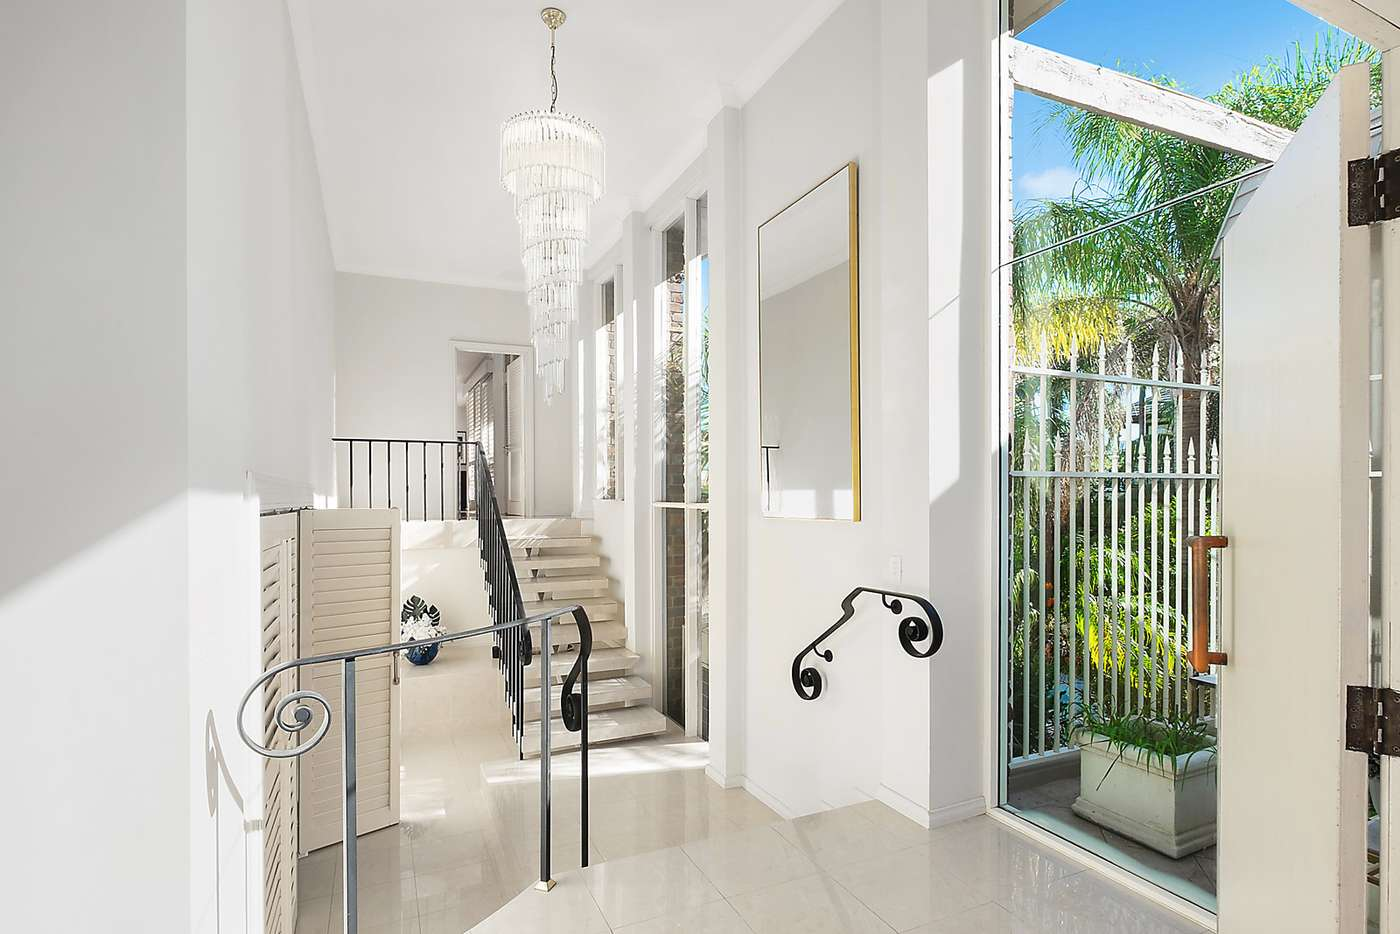 Sixth view of Homely house listing, 36 Pleasant Way, Blakehurst NSW 2221